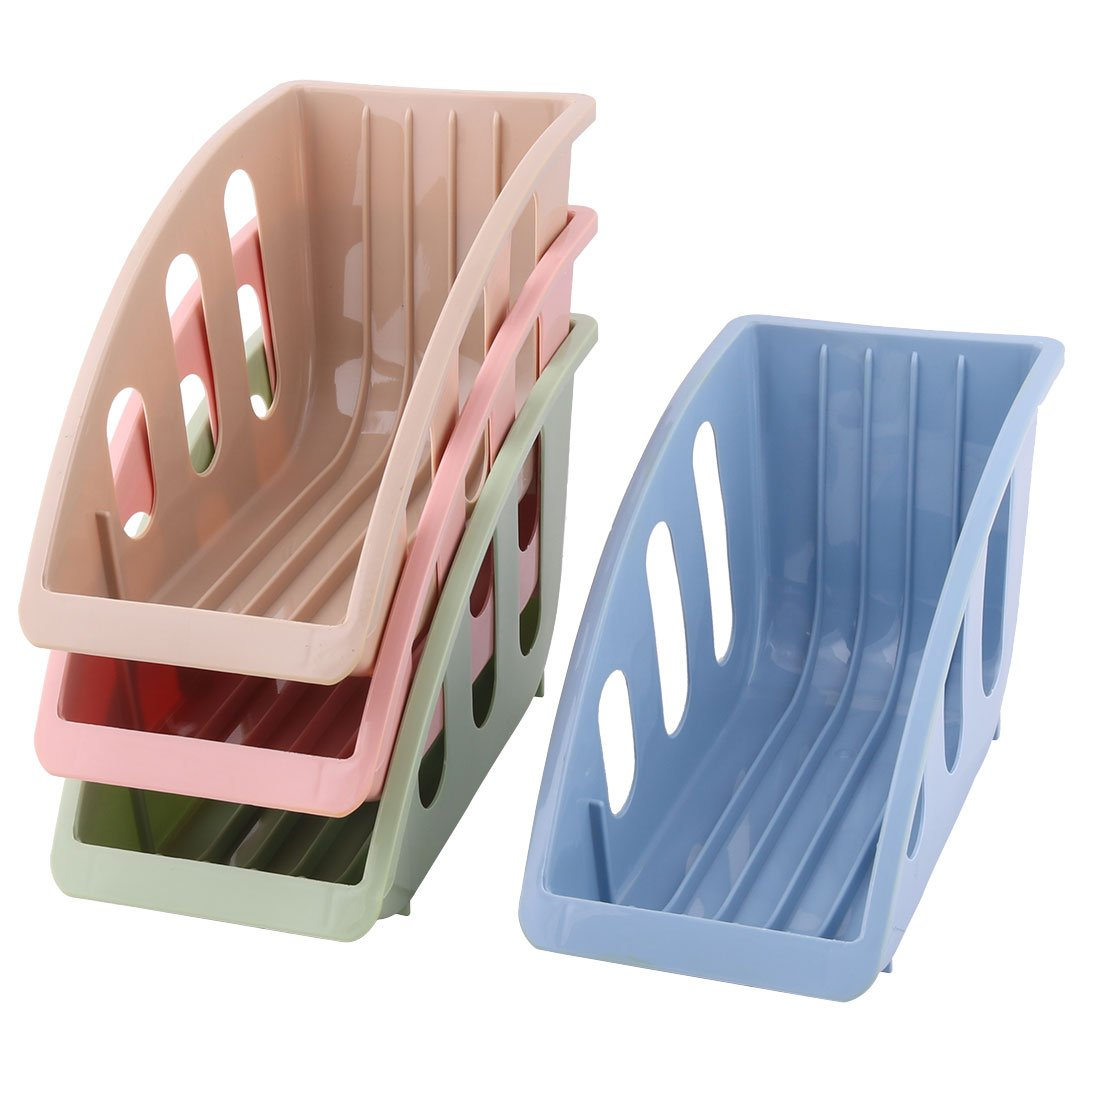 uxcell Plastic Home Kitchen Dish Drainer Multifunction Plate Storage Organizer Rack 4pcs